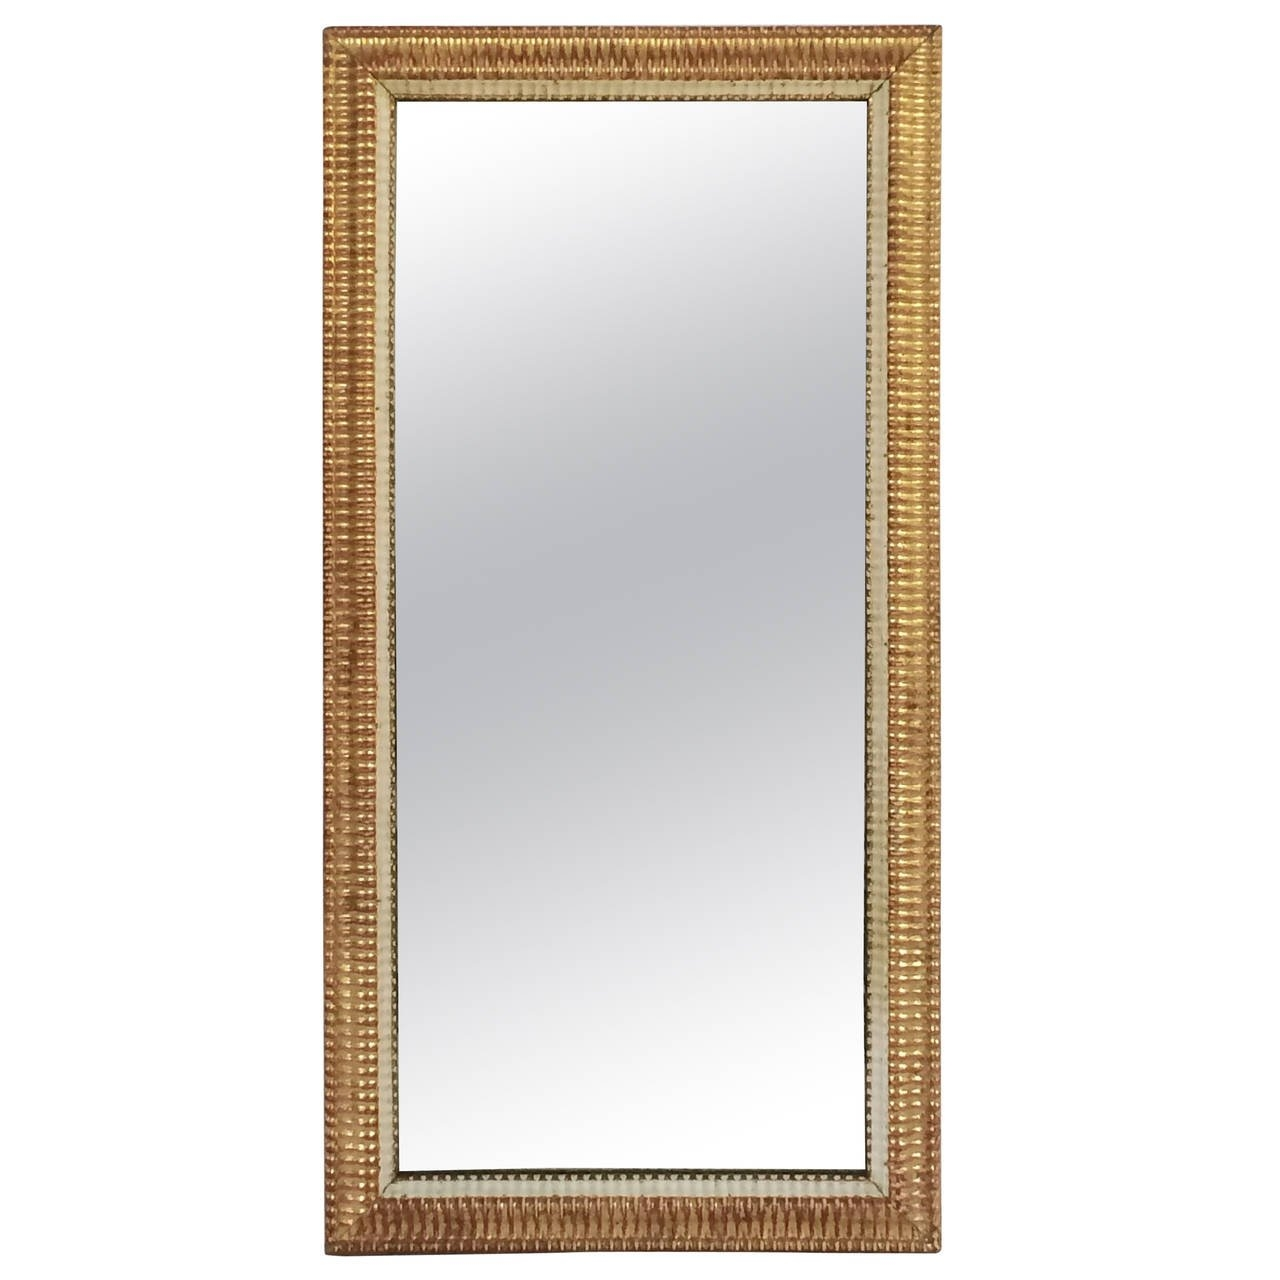 Large French Gilt Rectangular Wall Mirror 52 12 X 26 12 At Within Large French Mirror (Image 12 of 15)